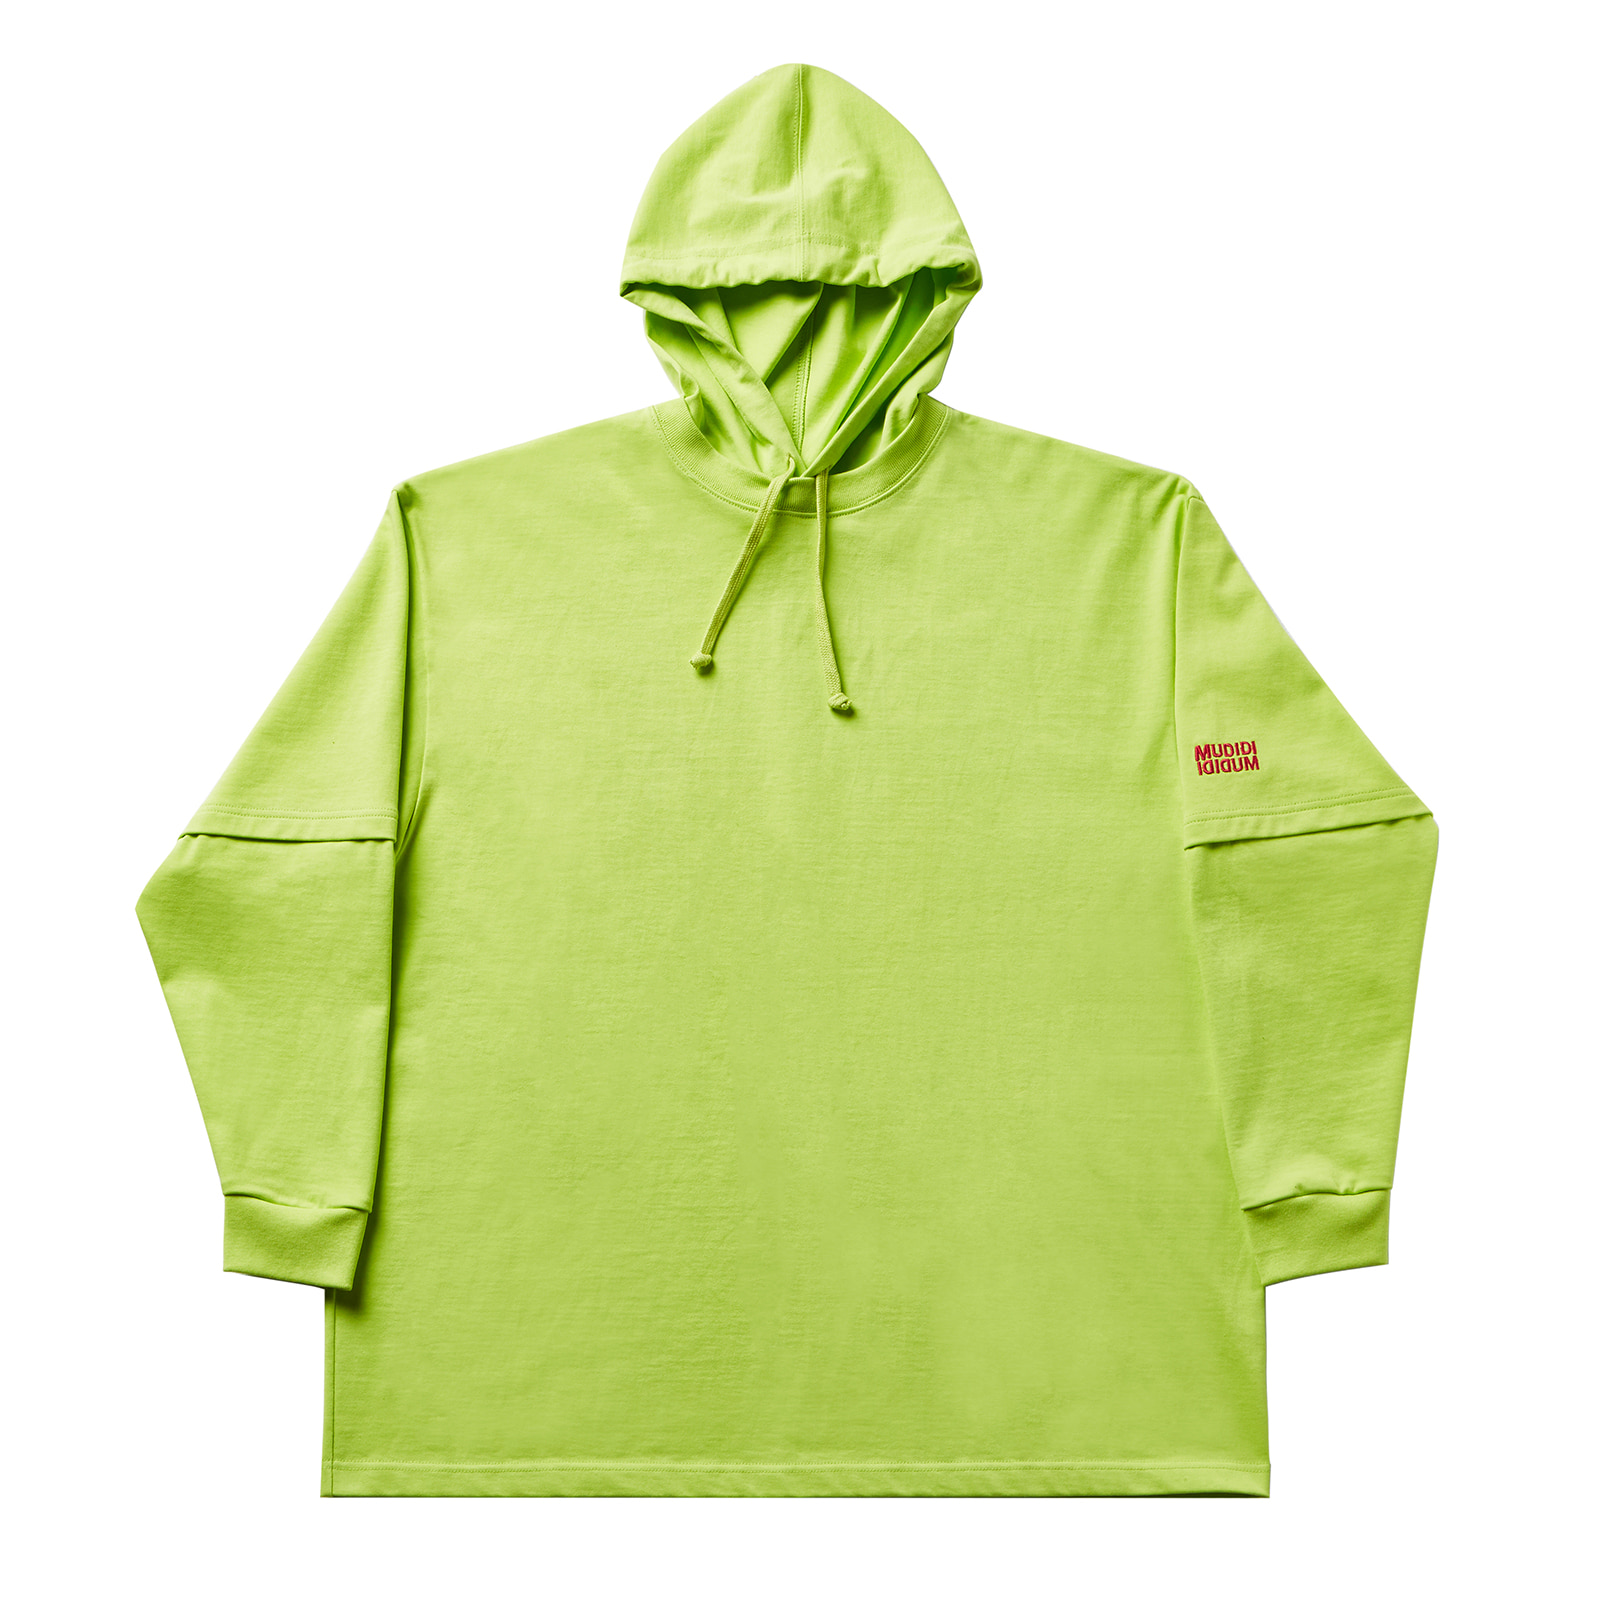 Layered hoody 001 yellowgreen(unisex)